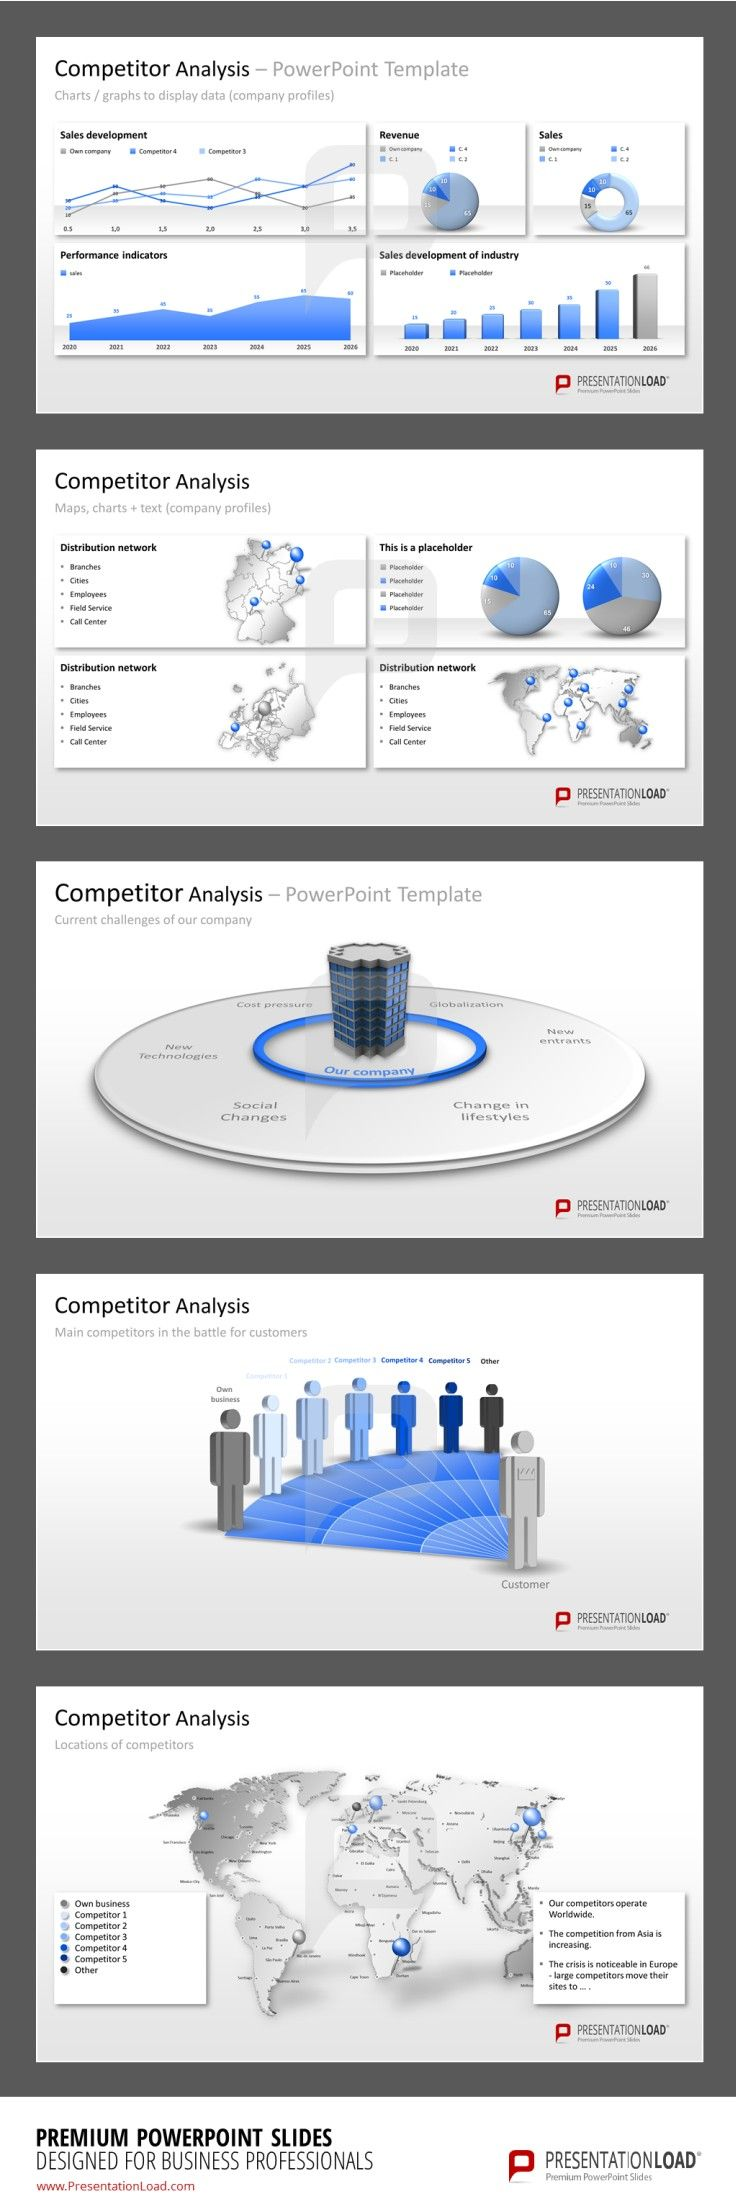 Competitor Analysis Powerpoint Templates The Competitor Analysis Powerpoint  Templates Contain A Variety Of Charts And Graphs